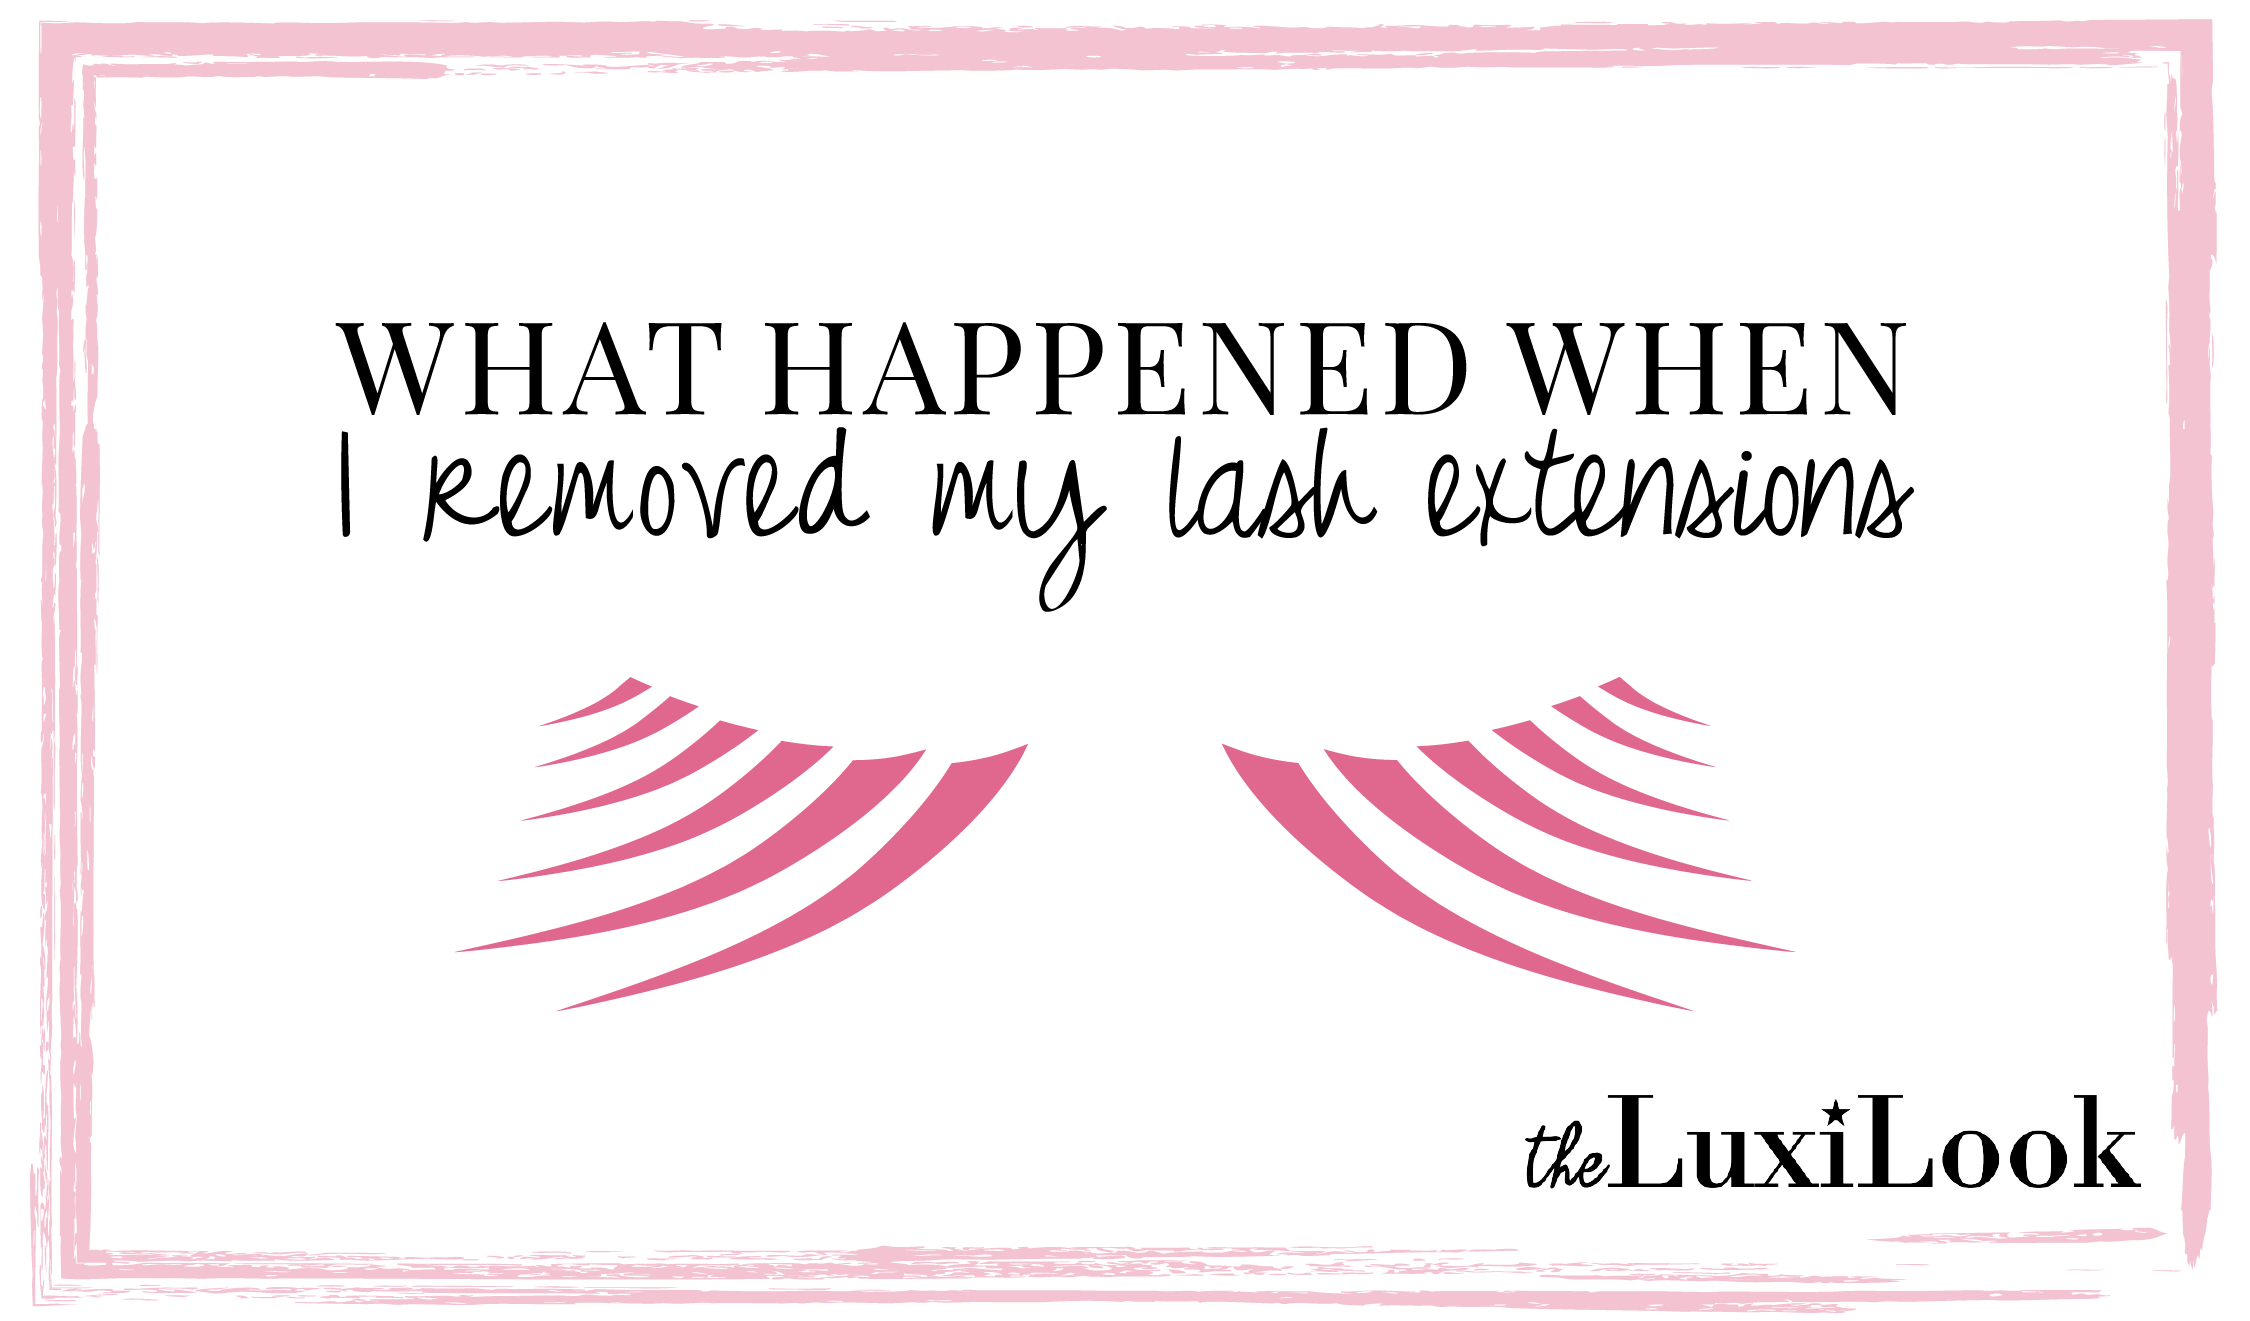 8efe3a25d95 Read this post for all the details on eyelash extension removal including  what happened, damage to natural lashes, benefits, & proper removal.